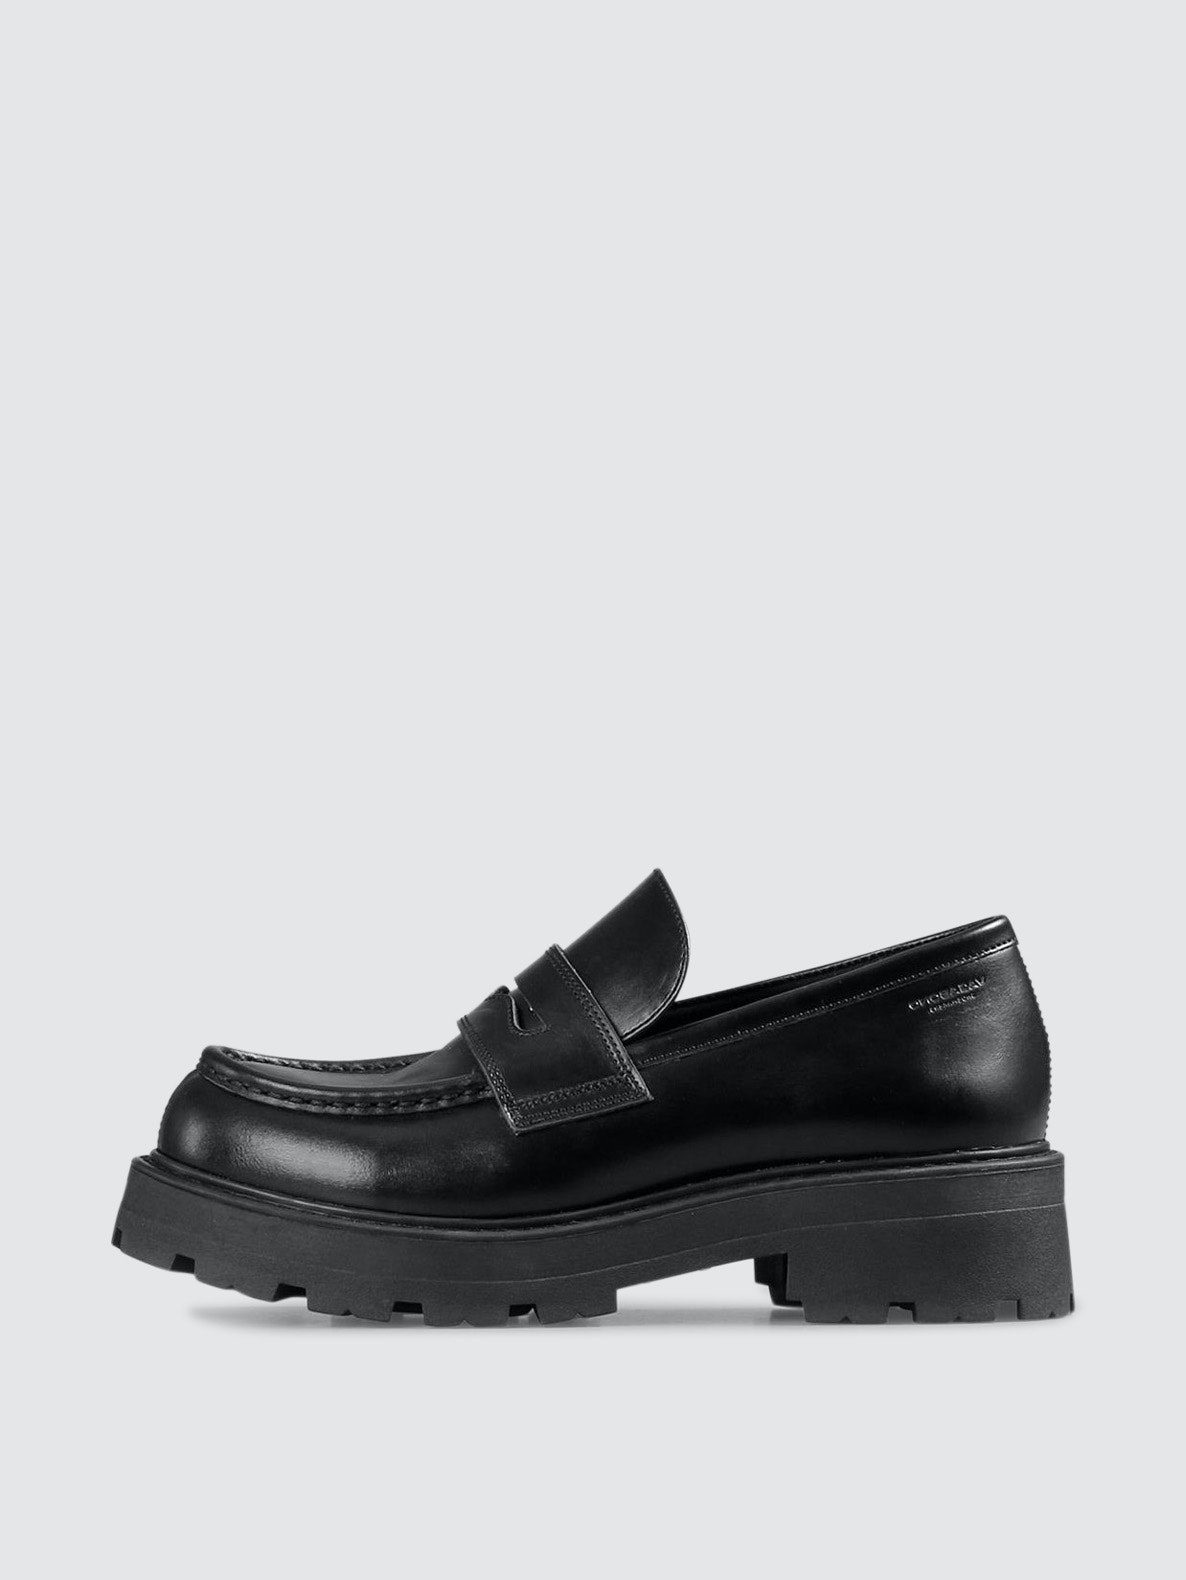 Cosmo 2.0 Chunky Penny Loafer by Vagabond Shoemakers, available on verishop.com for $160 Bella Hadid Shoes Exact Product